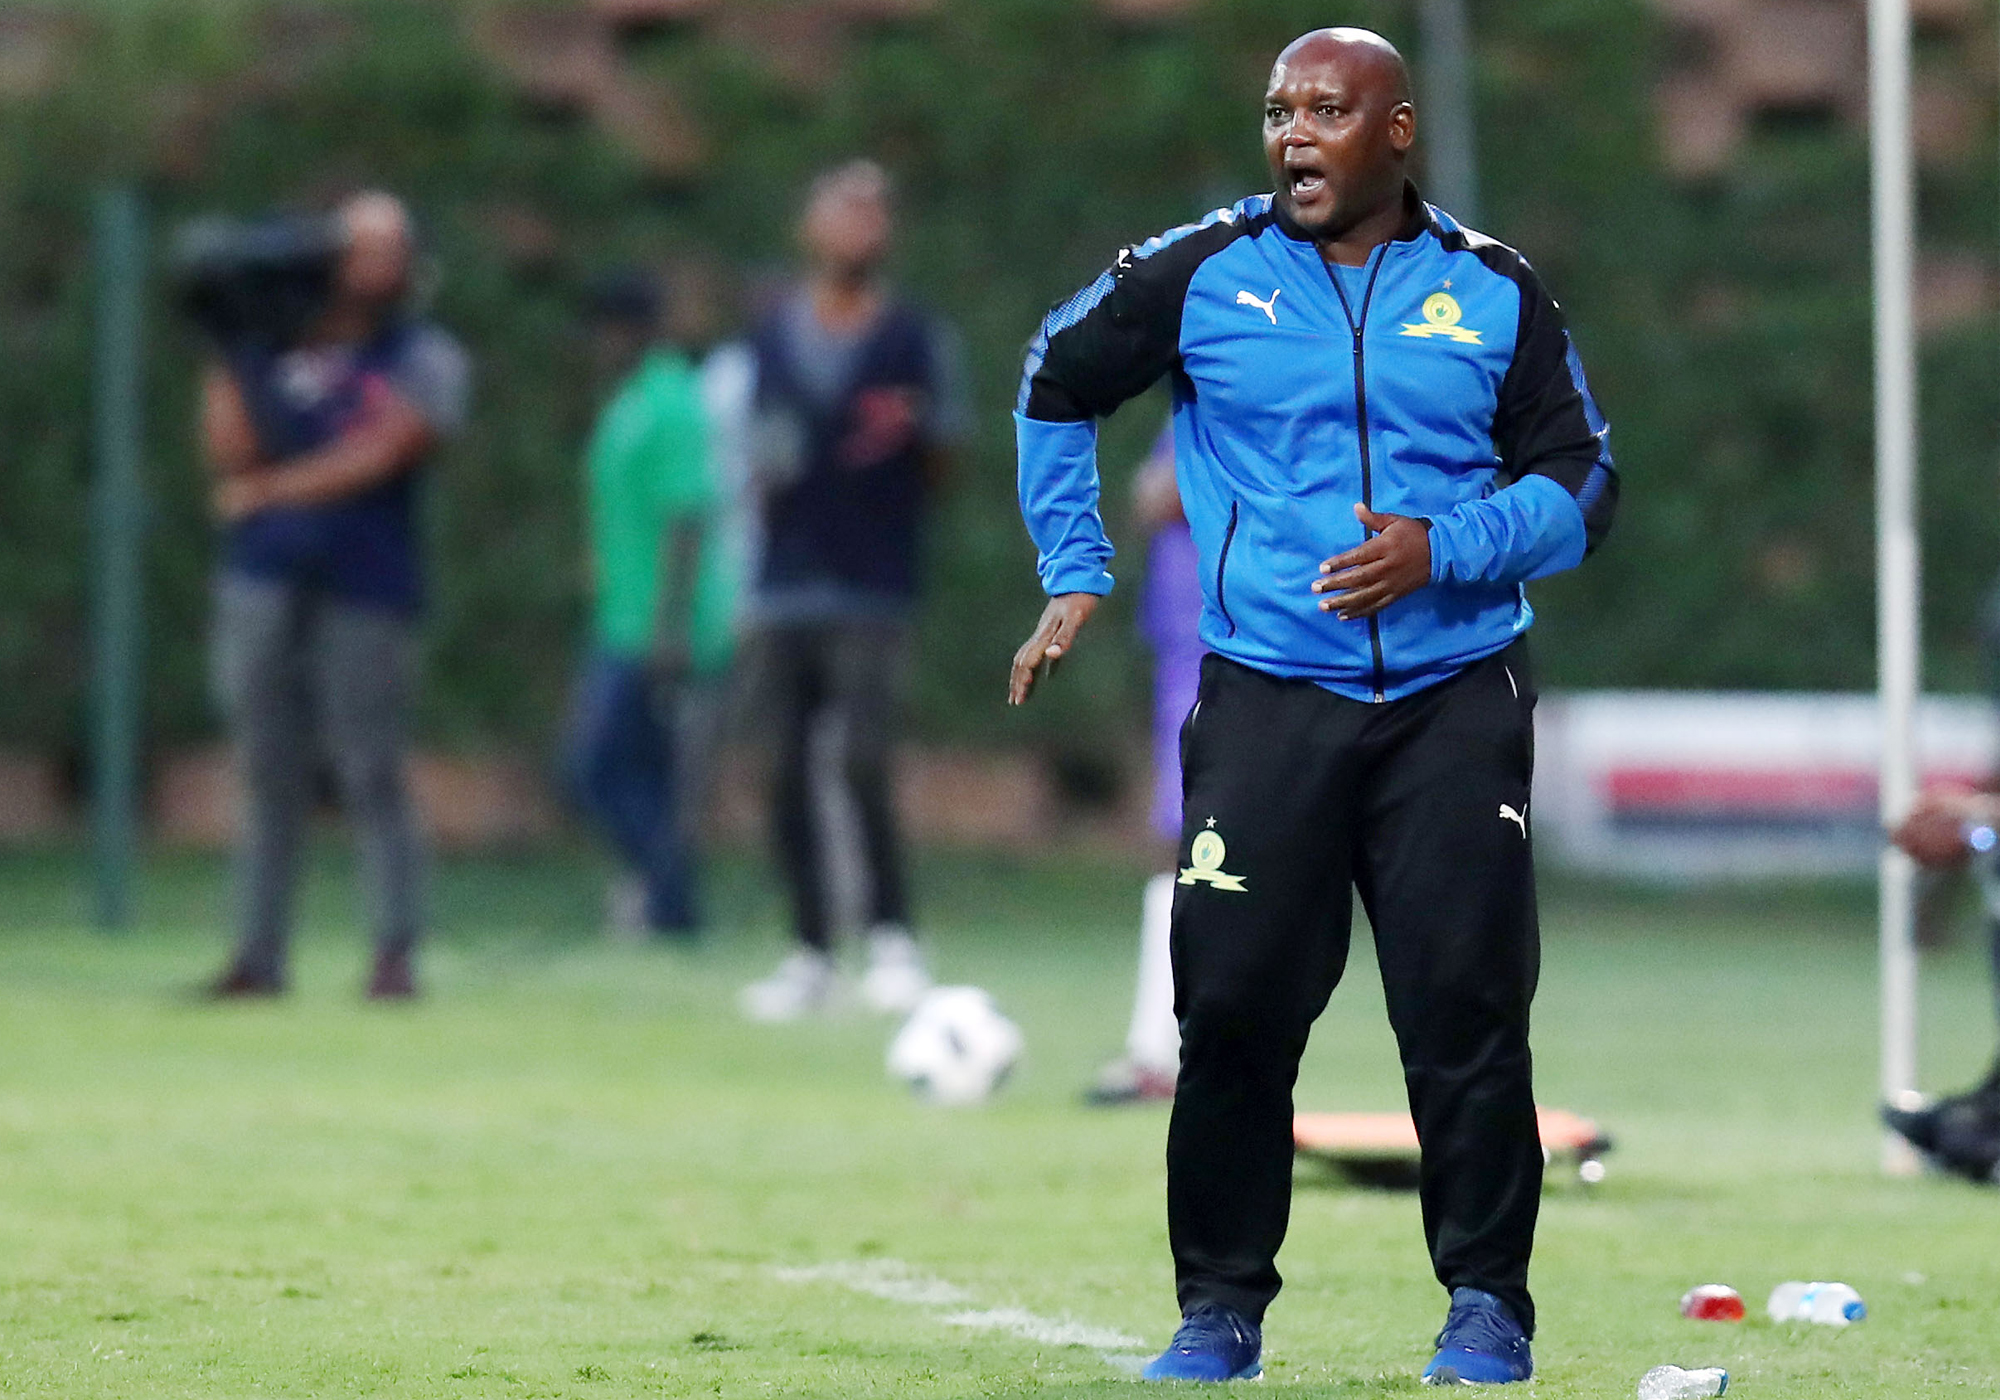 e190de5e1 Mamelodi Sundowns' Caf Champions League campaign started on the good note  with coach Pitso Mosimane receiving an invitation from Caf's President  Ahmad Ahmad ...